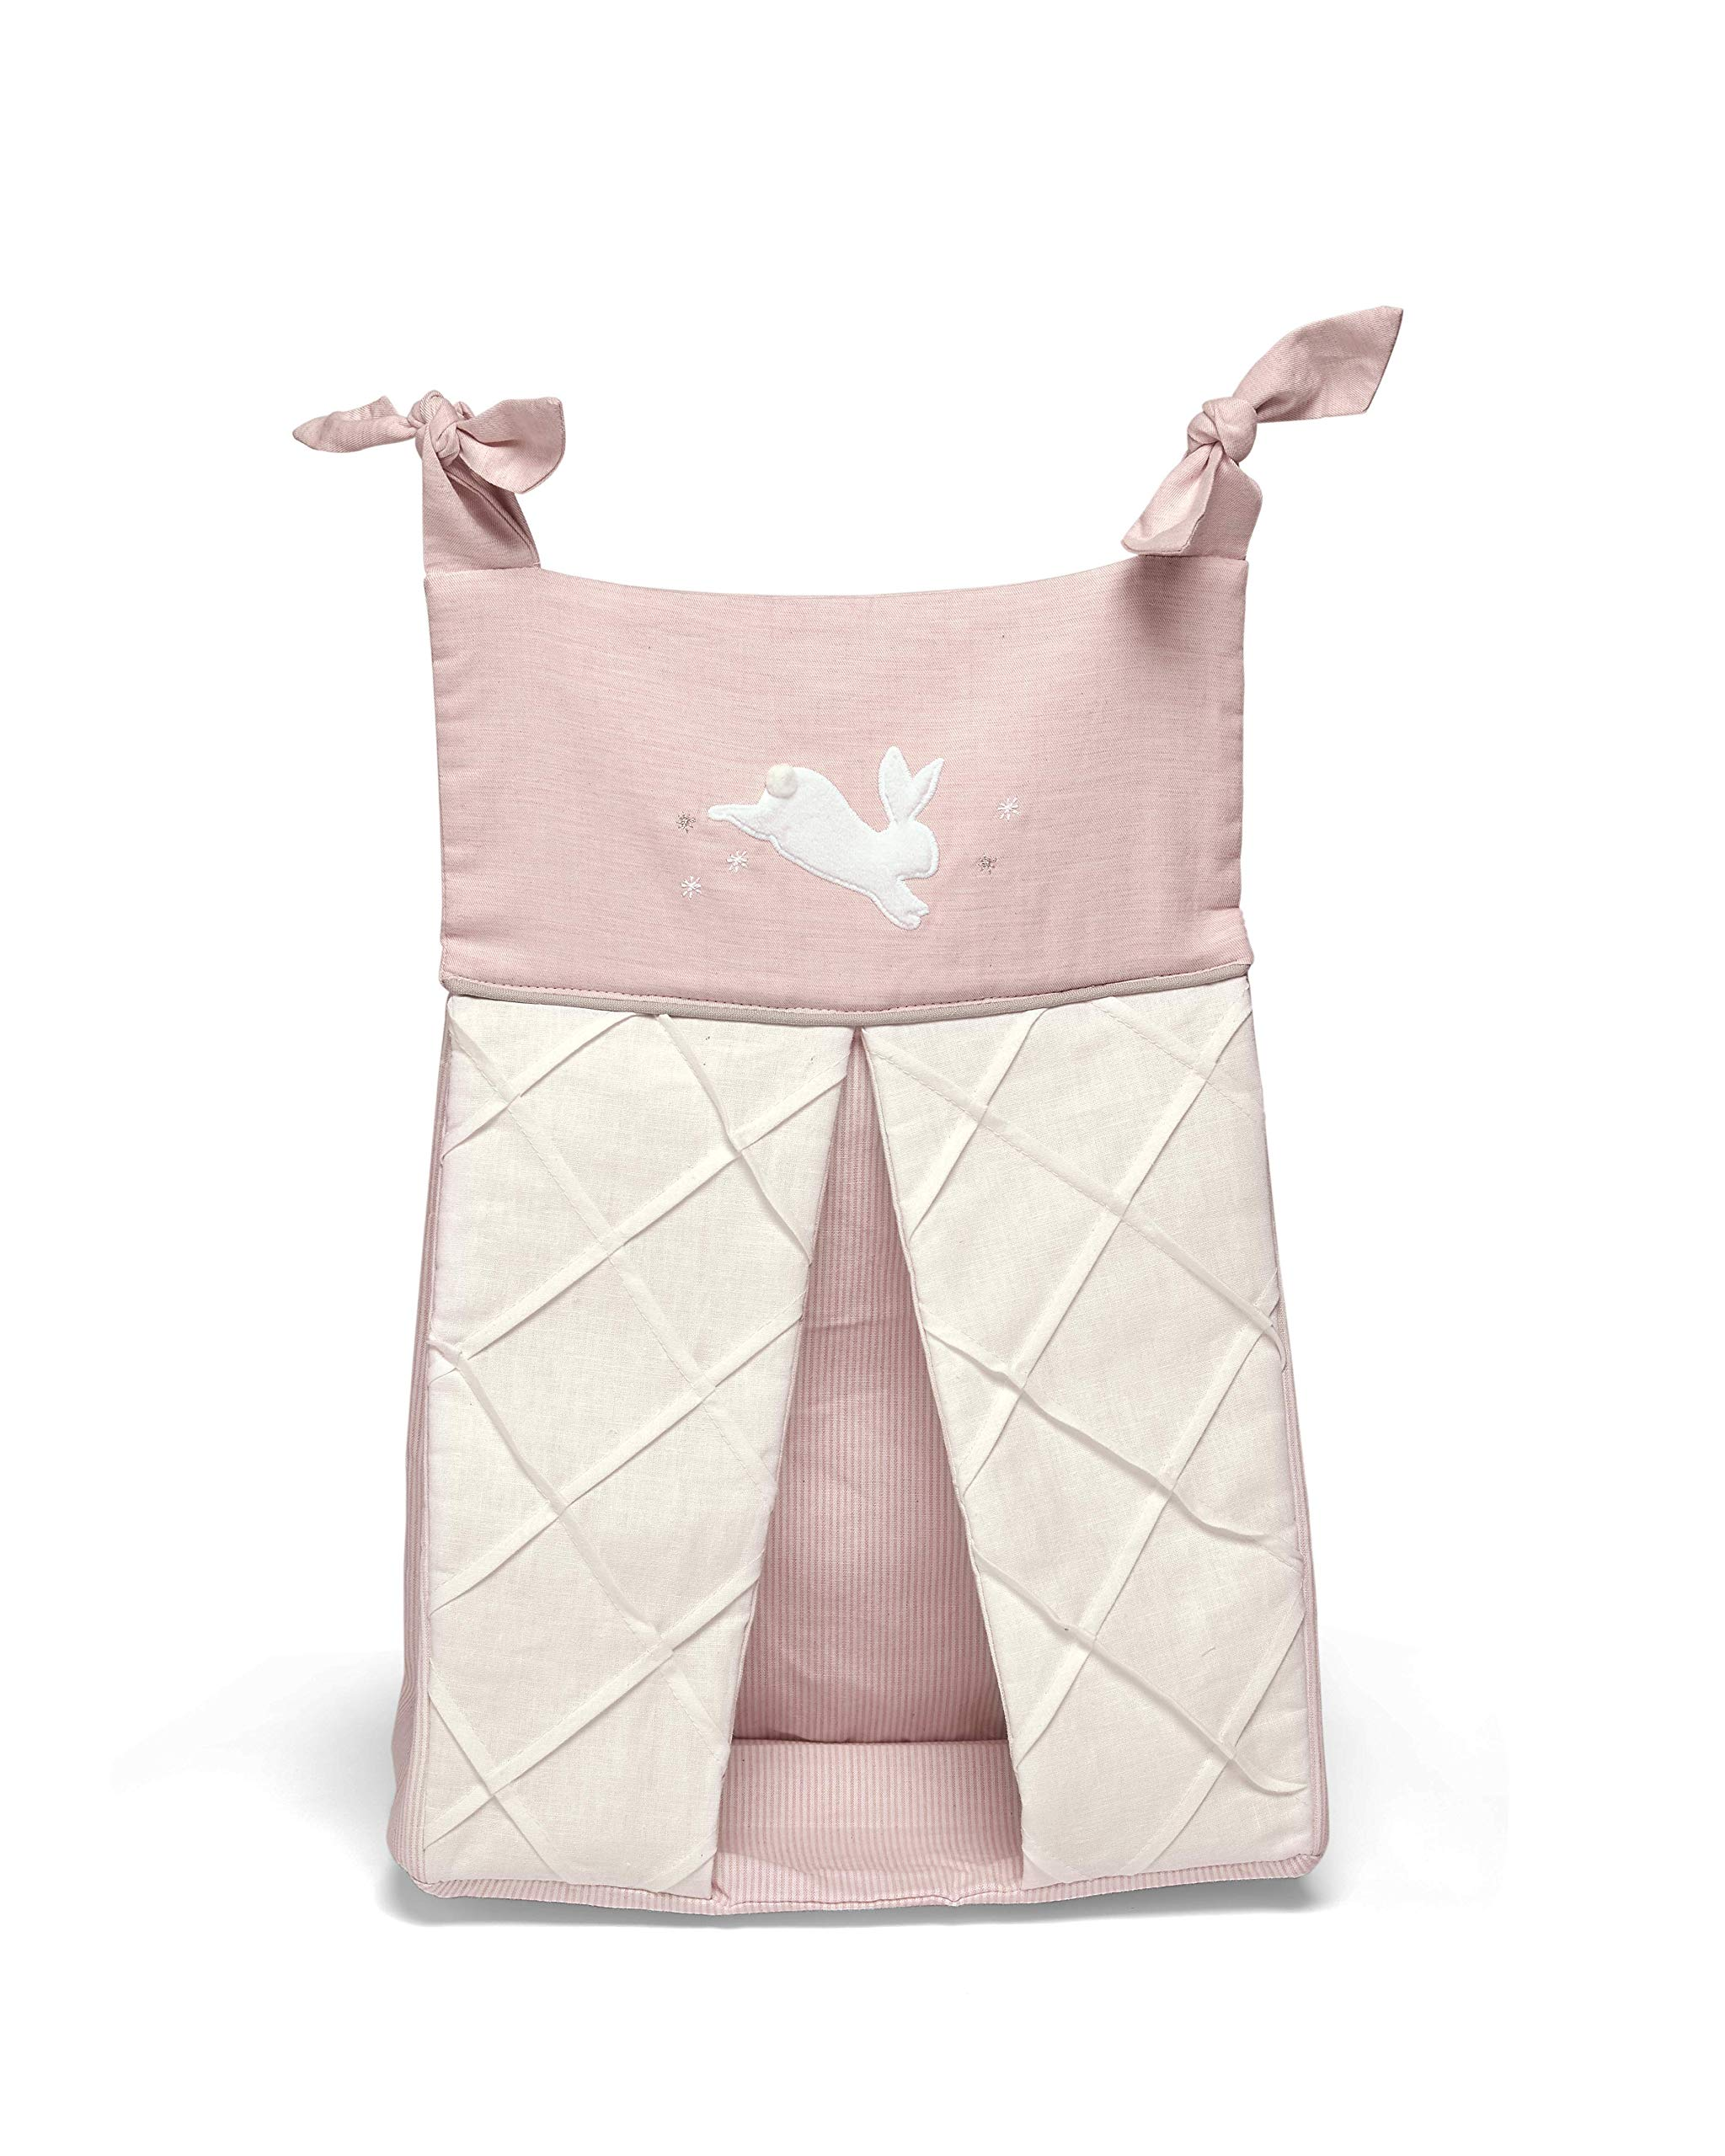 Mamas & Papas Nappy Stacker, Nursery Accessories - Welcome to The World Pink by Mamas & Papas (Image #2)